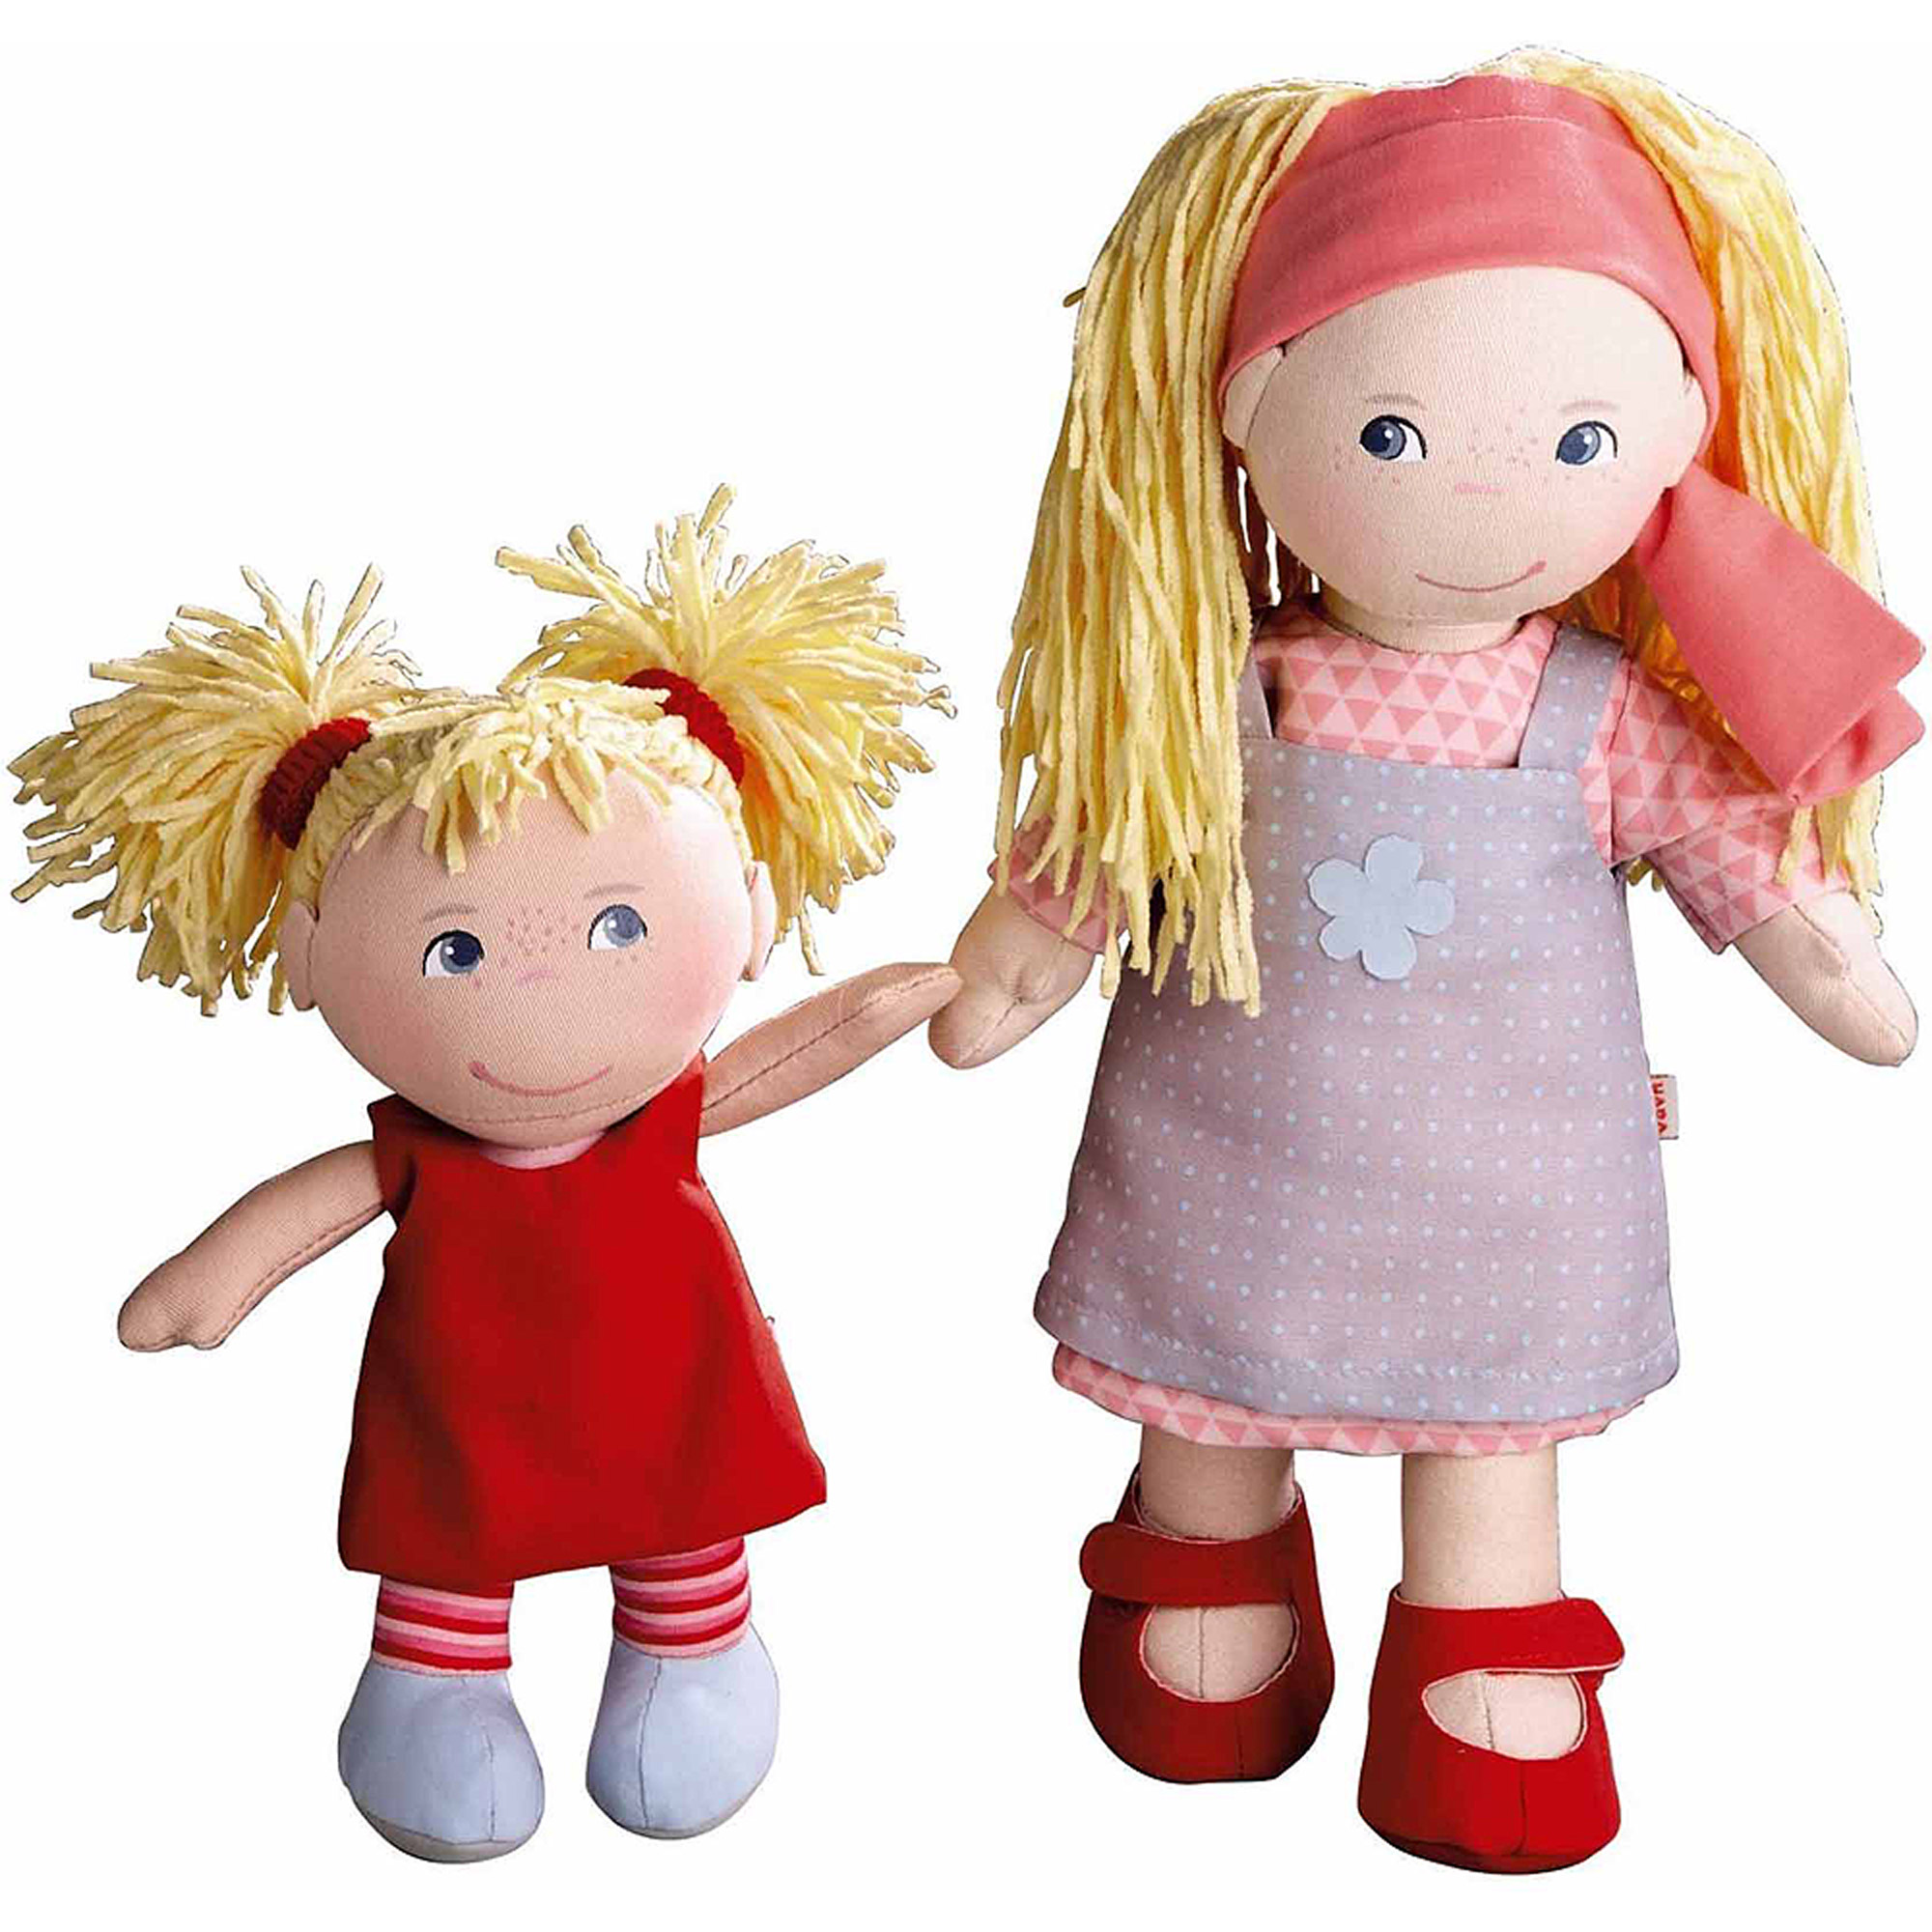 "HABA Doll Sisters, 12"" Lennja and 8"" Elin"